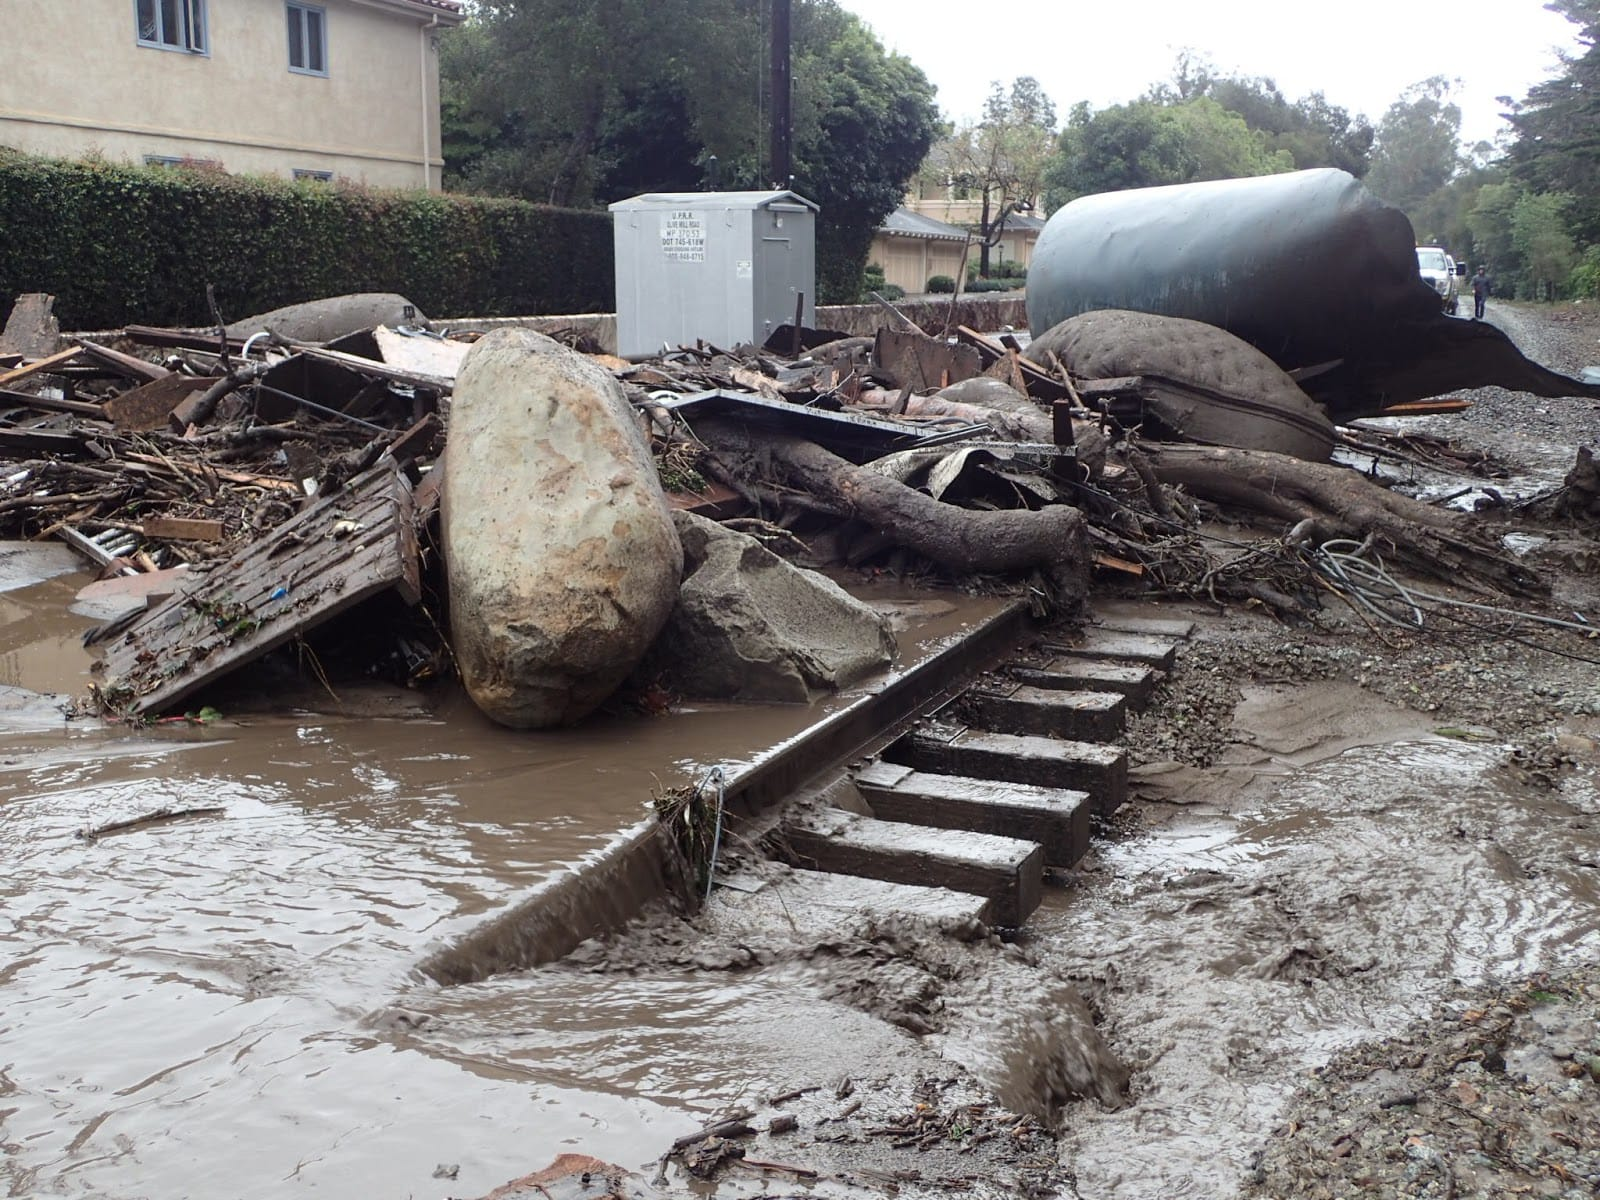 1/9 Debris Flow, Olive Mill Road at railroad tracks